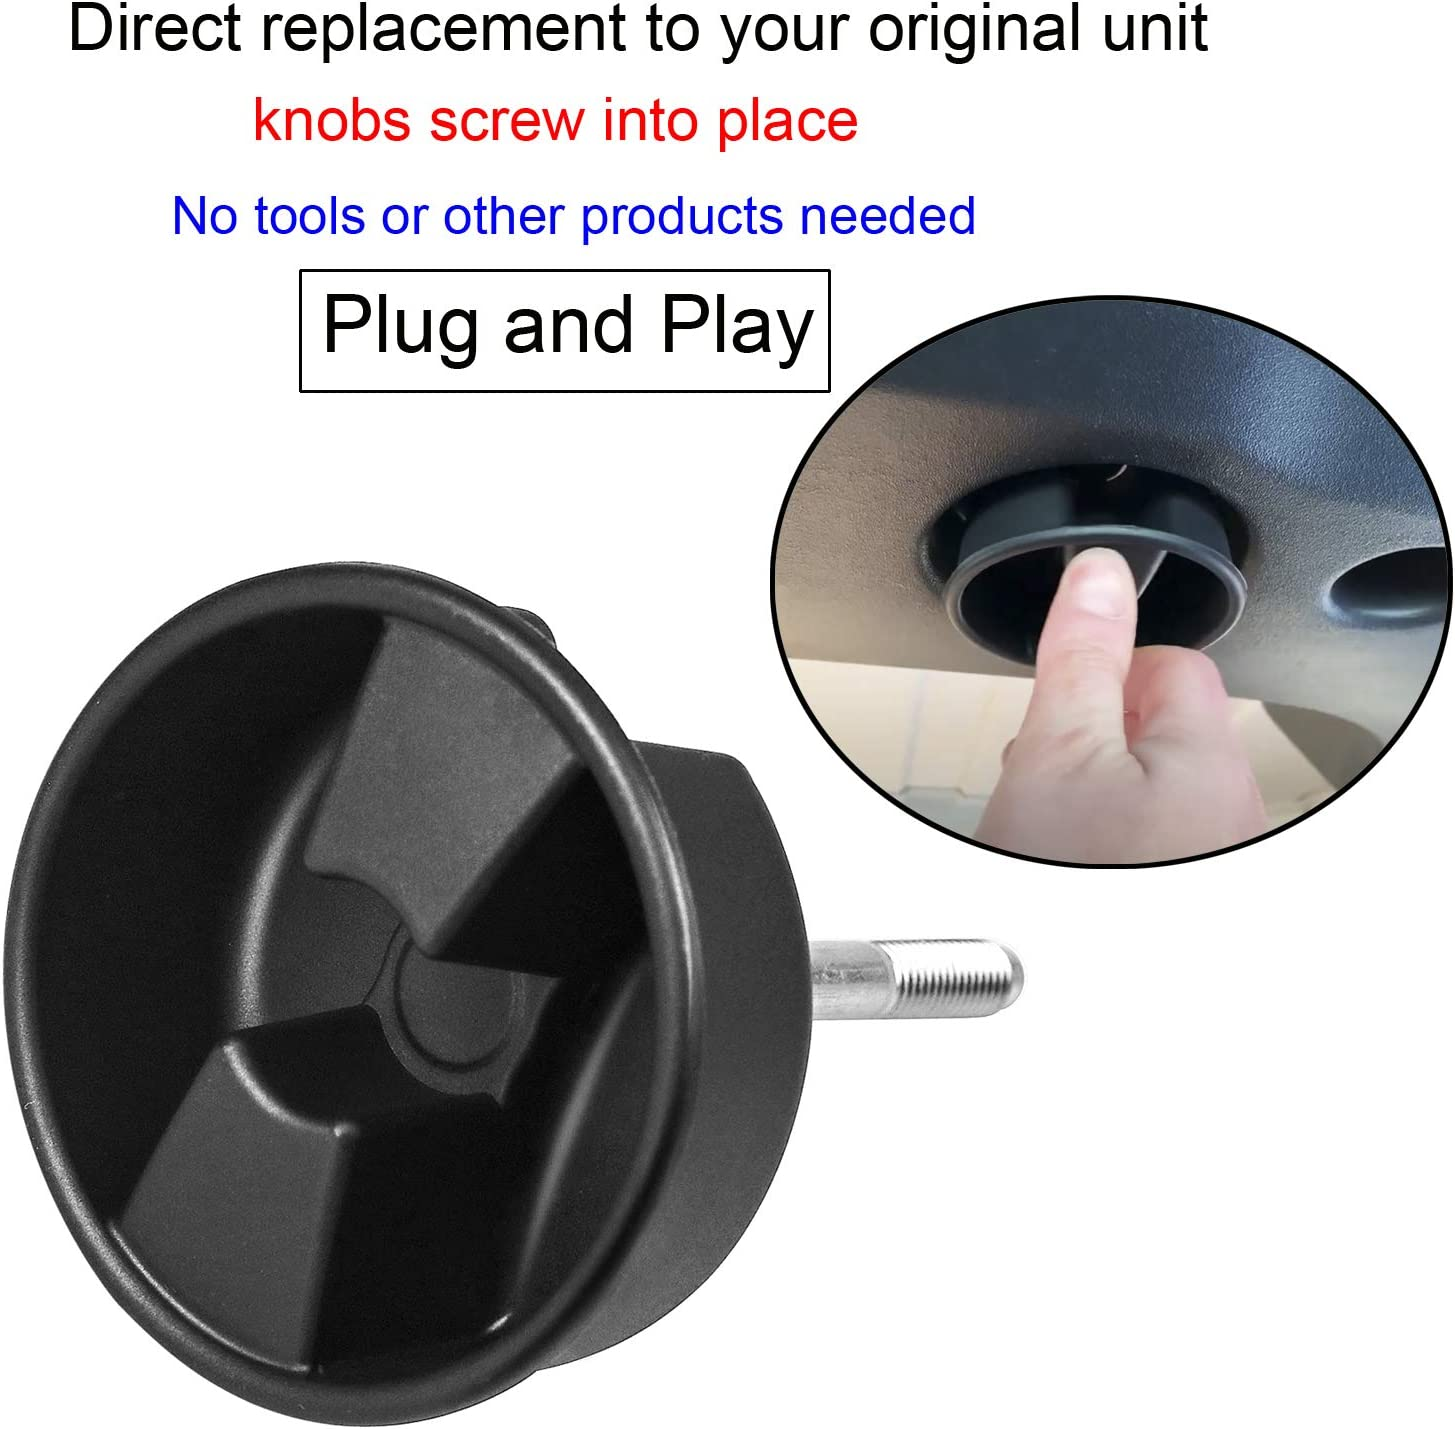 Hardtop Top Hard Panel Mounting Screw Knob 2pcs Compatible with Jeep Wrangler JK 2dr and Unlimited 4dr 2007-2019